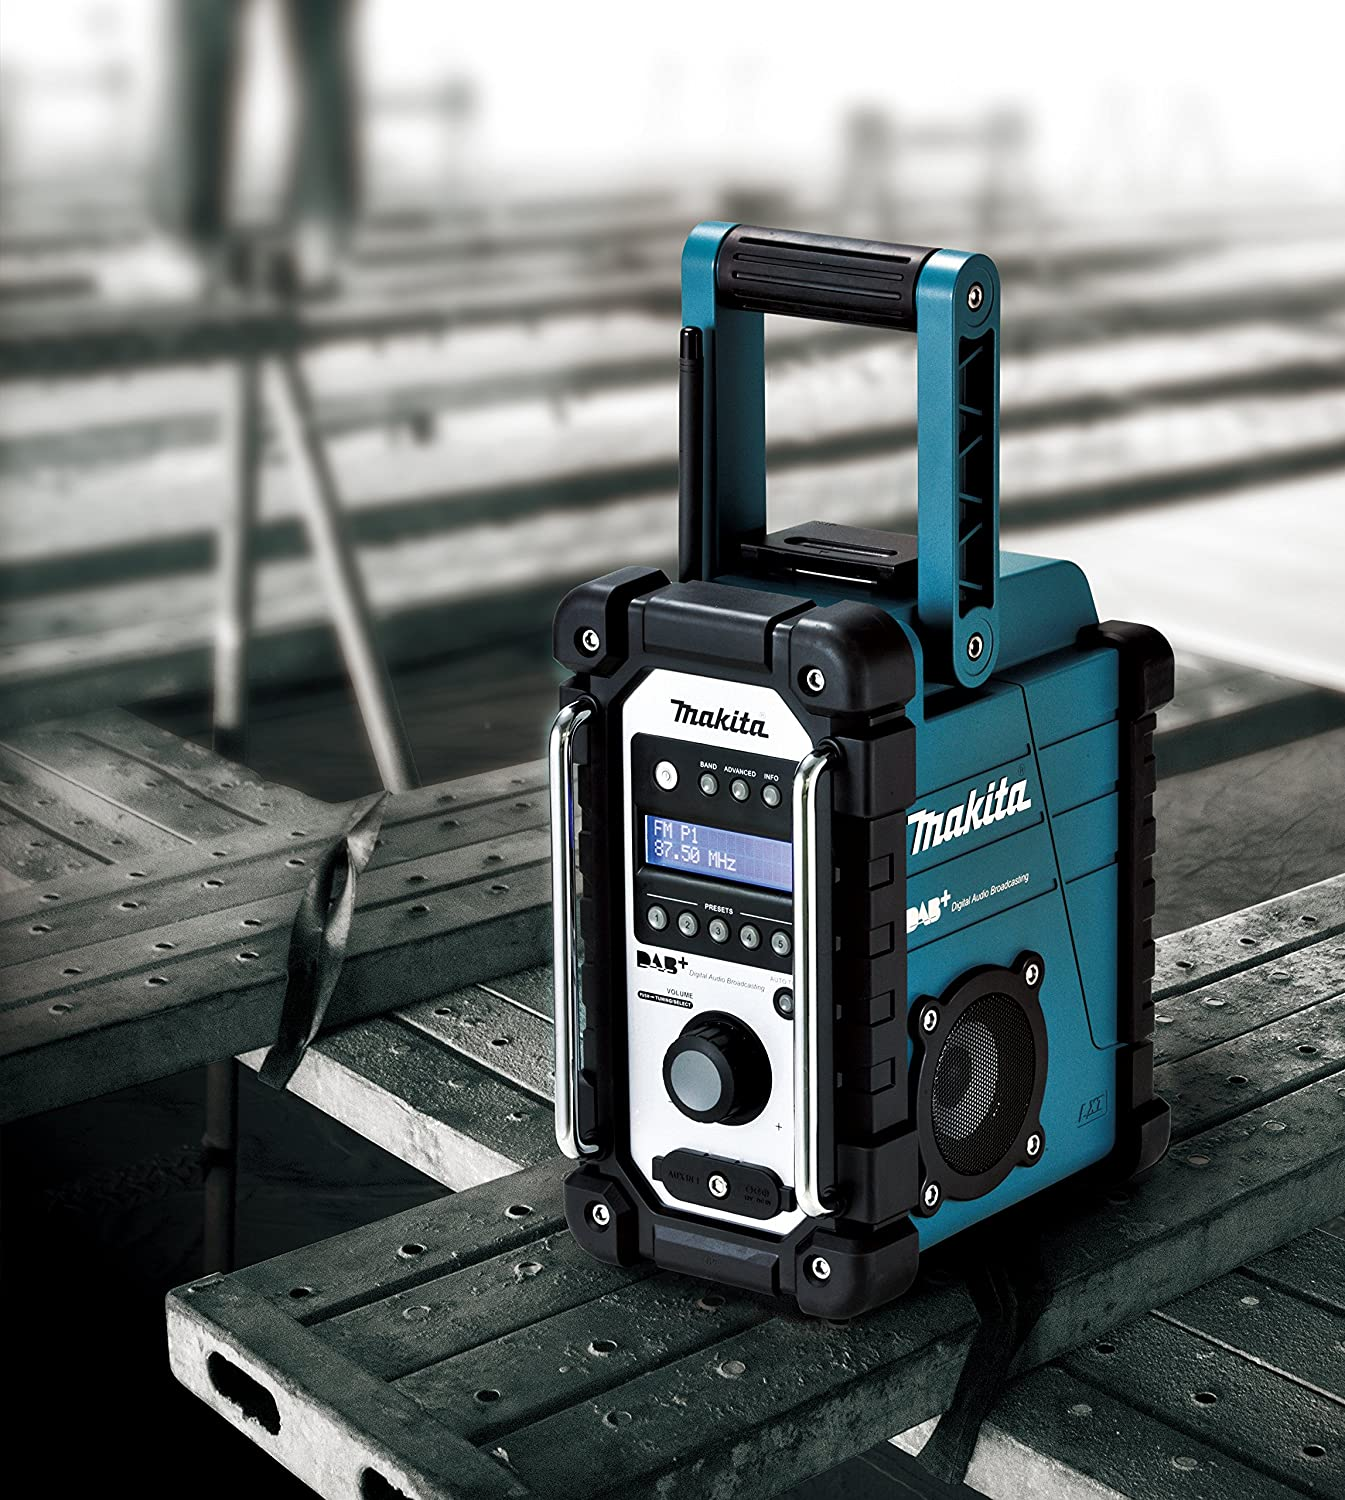 916Q8tXIwKL._SL1500_ makita dmr105 portable stereo ( digital audio broadcast (dab  at mifinder.co